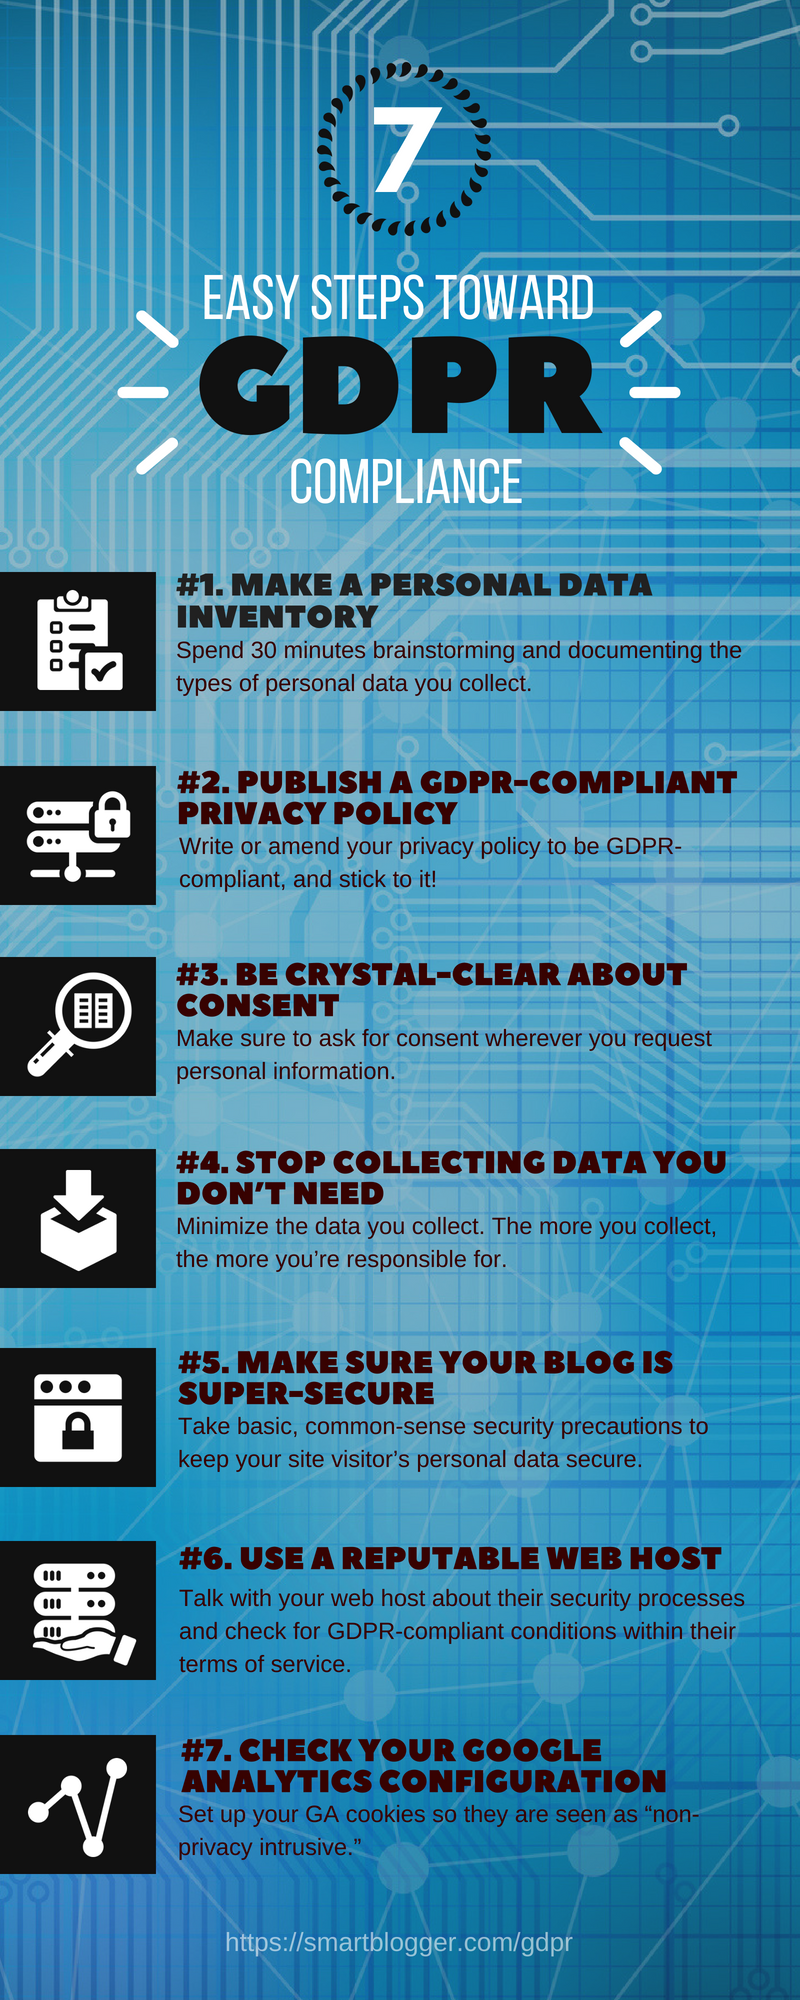 Seven Easy Steps Toward GDPR Compliance